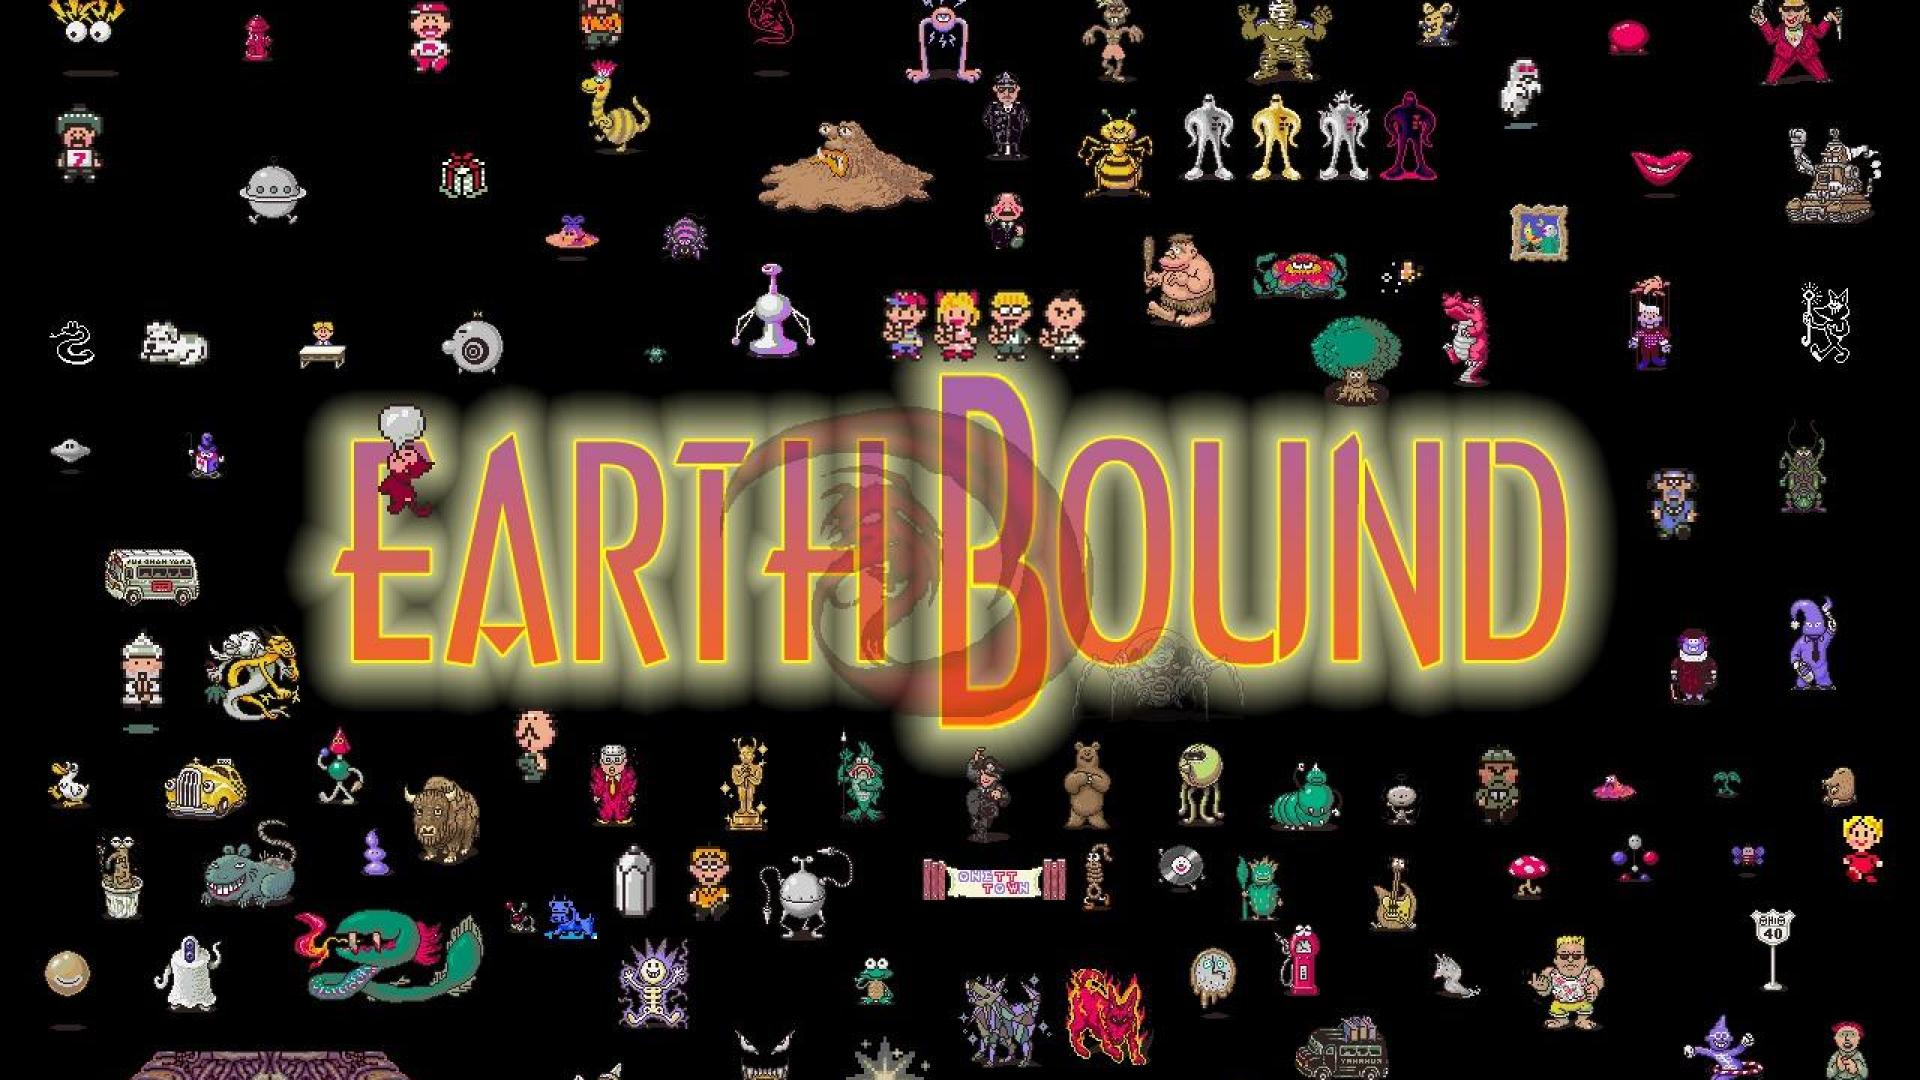 Earthbound   76156   High Quality and Resolution Wallpapers on 1920x1080